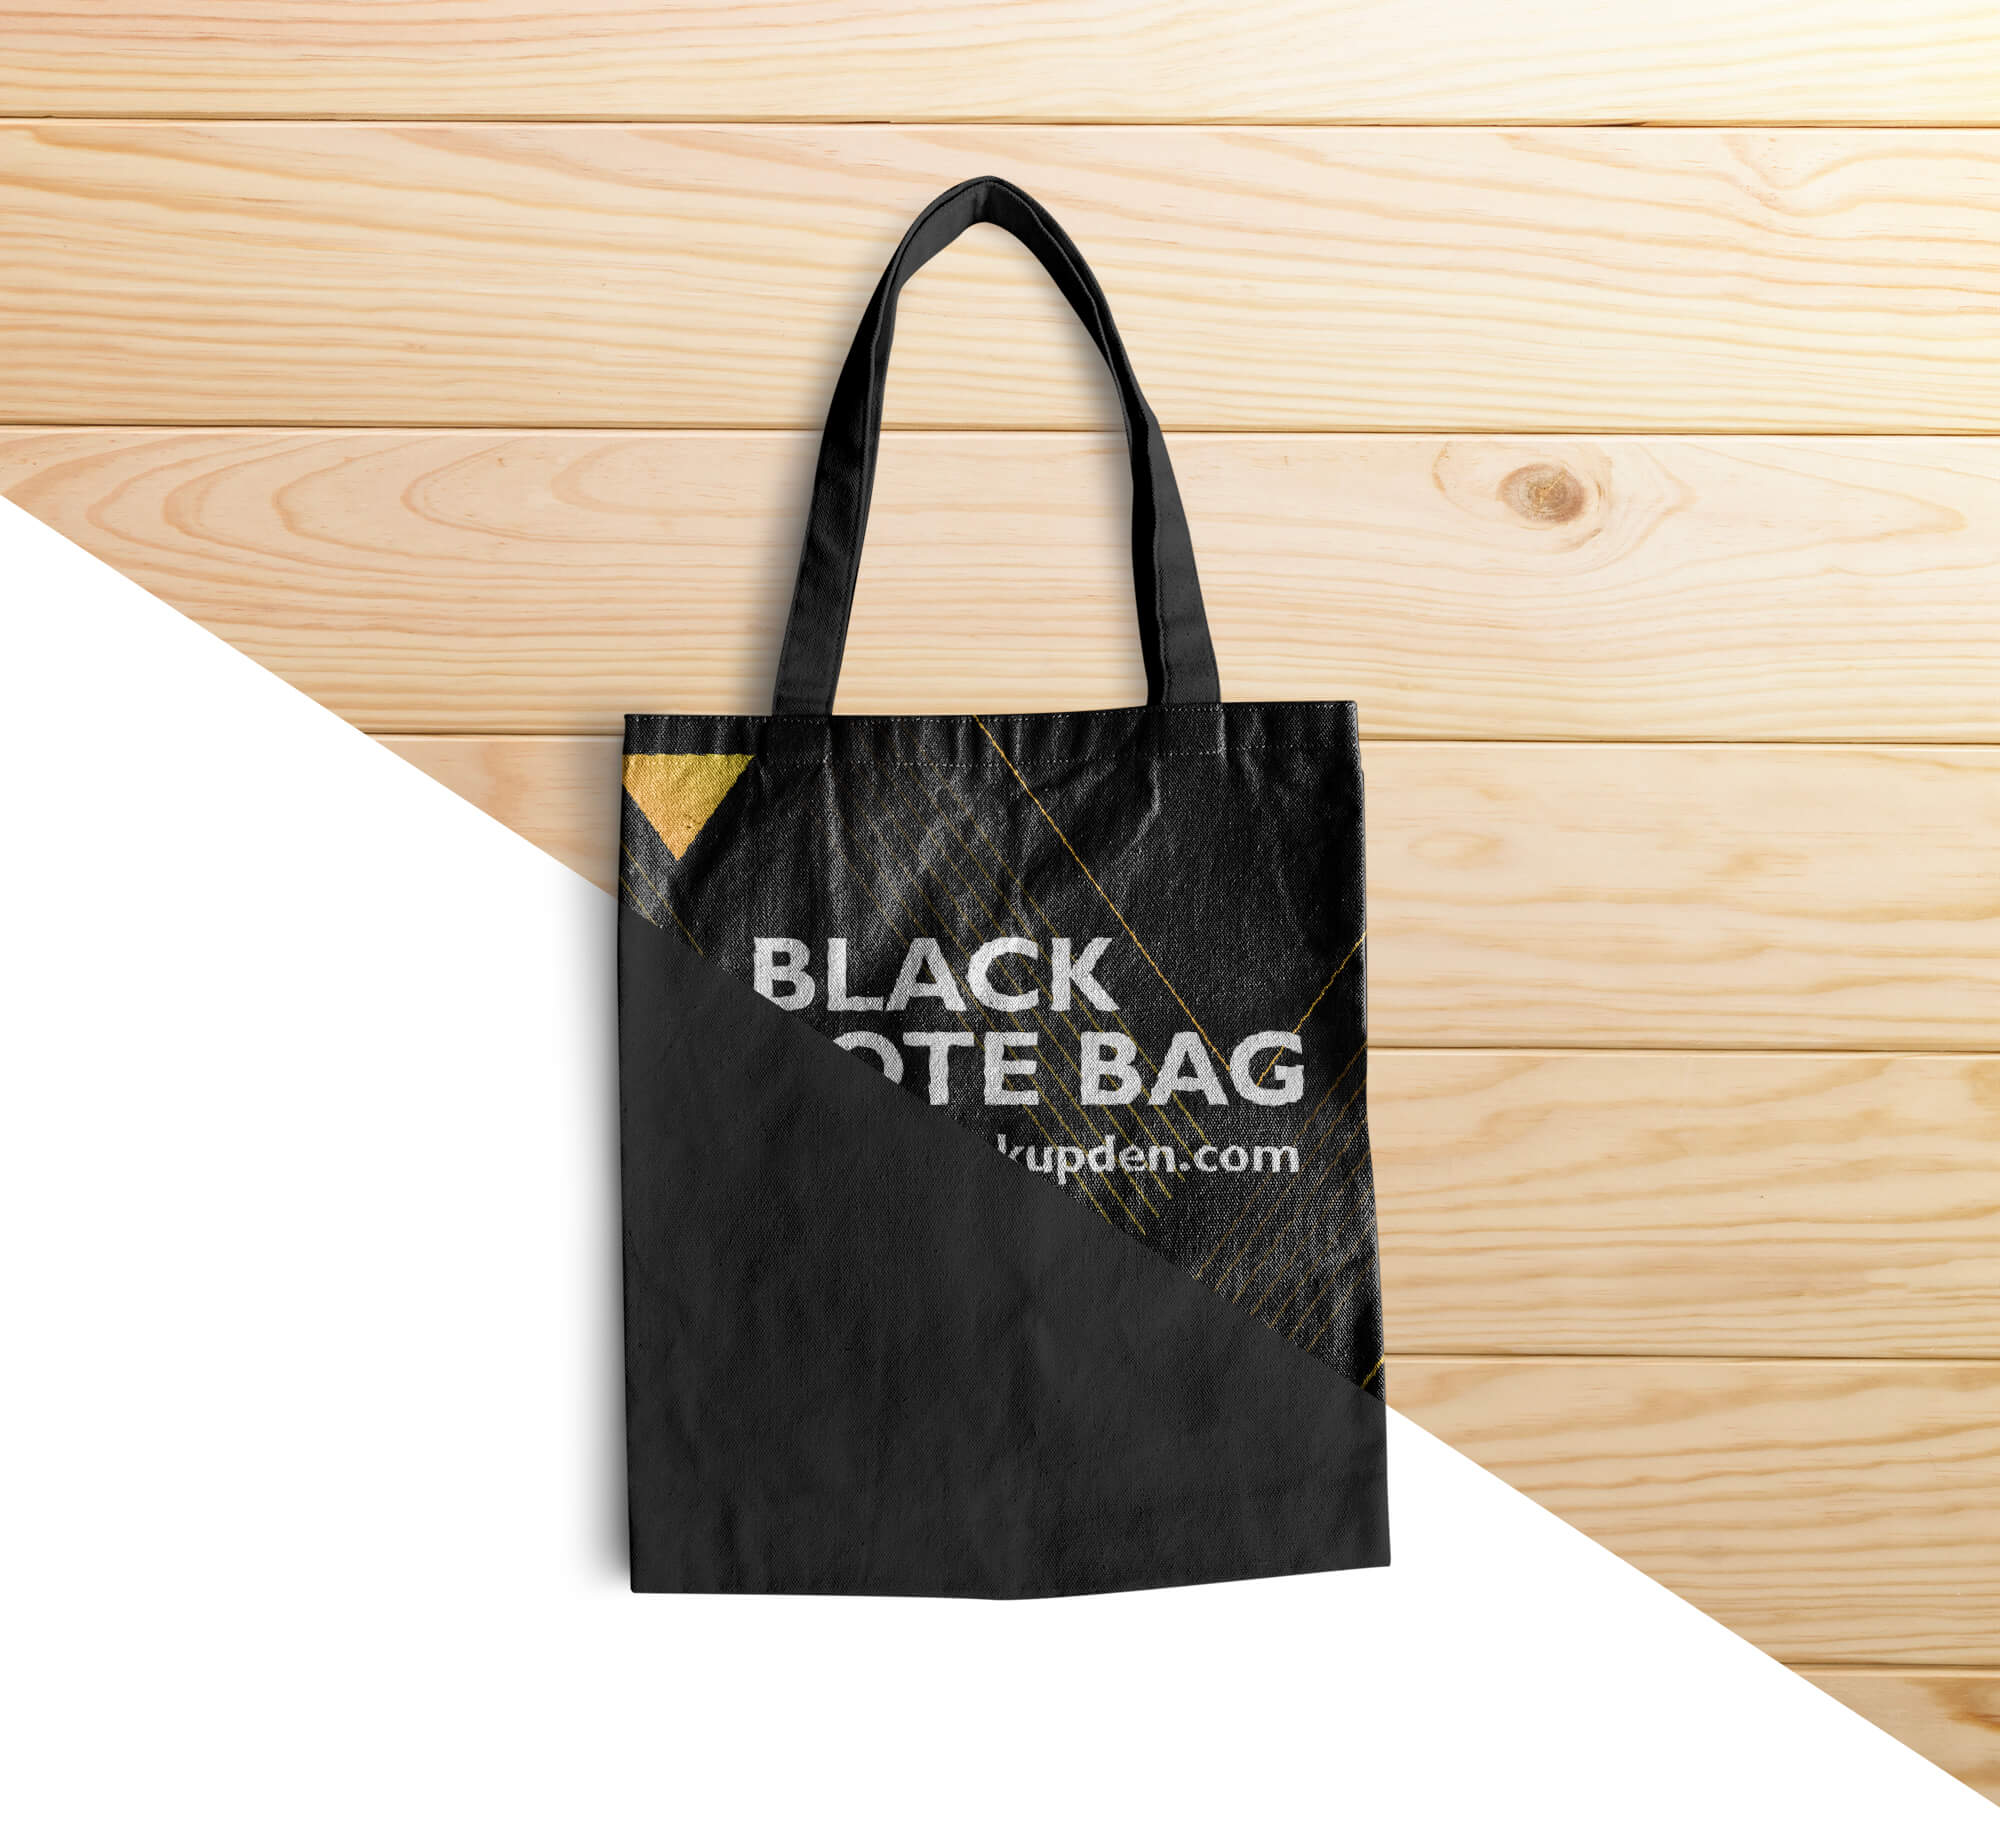 Editable Free Black Tote Bag Mockup PSD Template